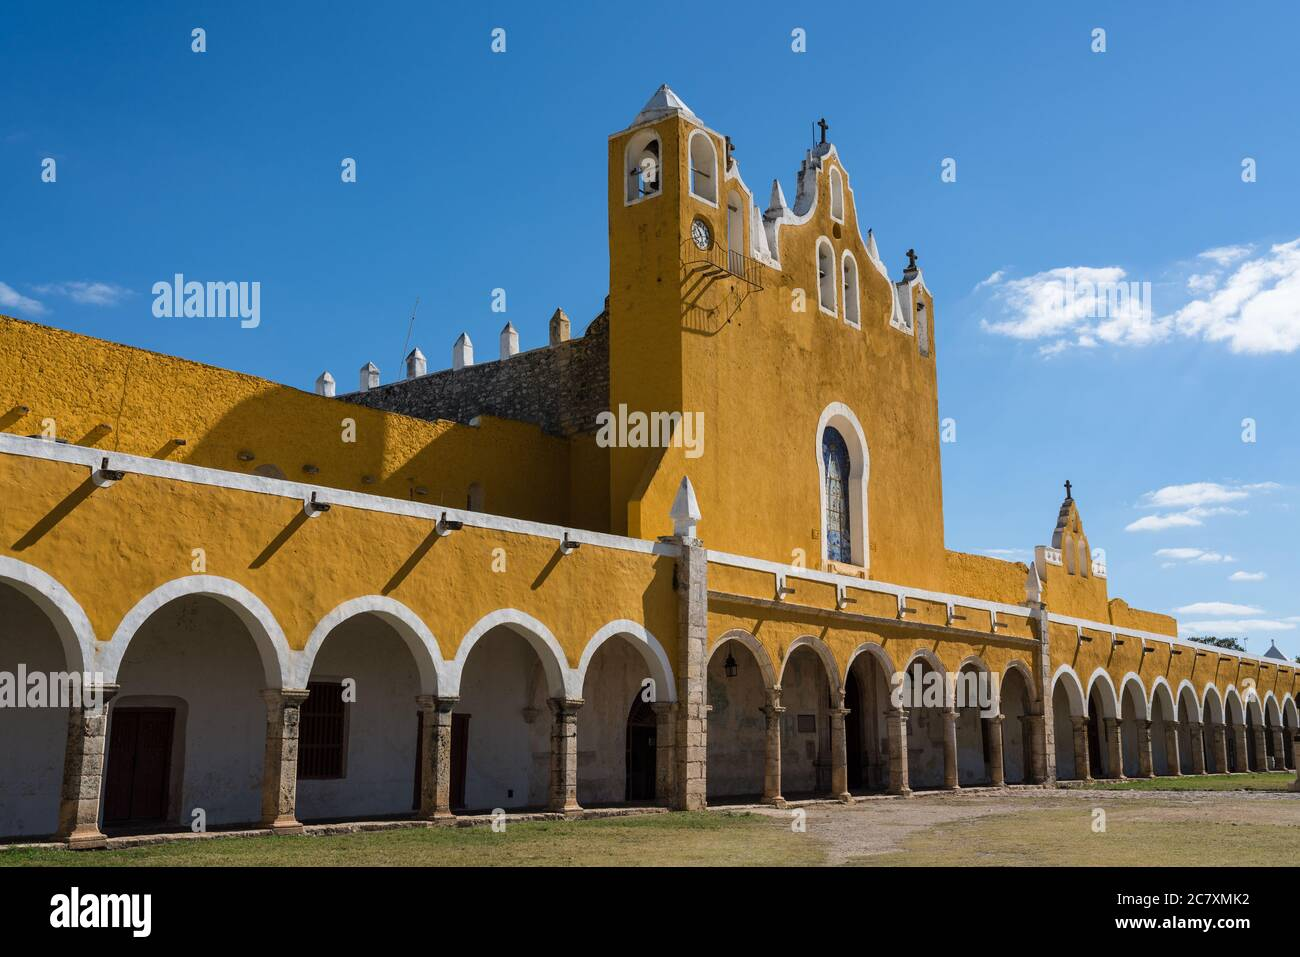 The Convent of San Antonio or Saint Anthony of Padua was founded in 1549 completed by 1562.  It was built on the foundation of a large Mayan pyramid. Stock Photo